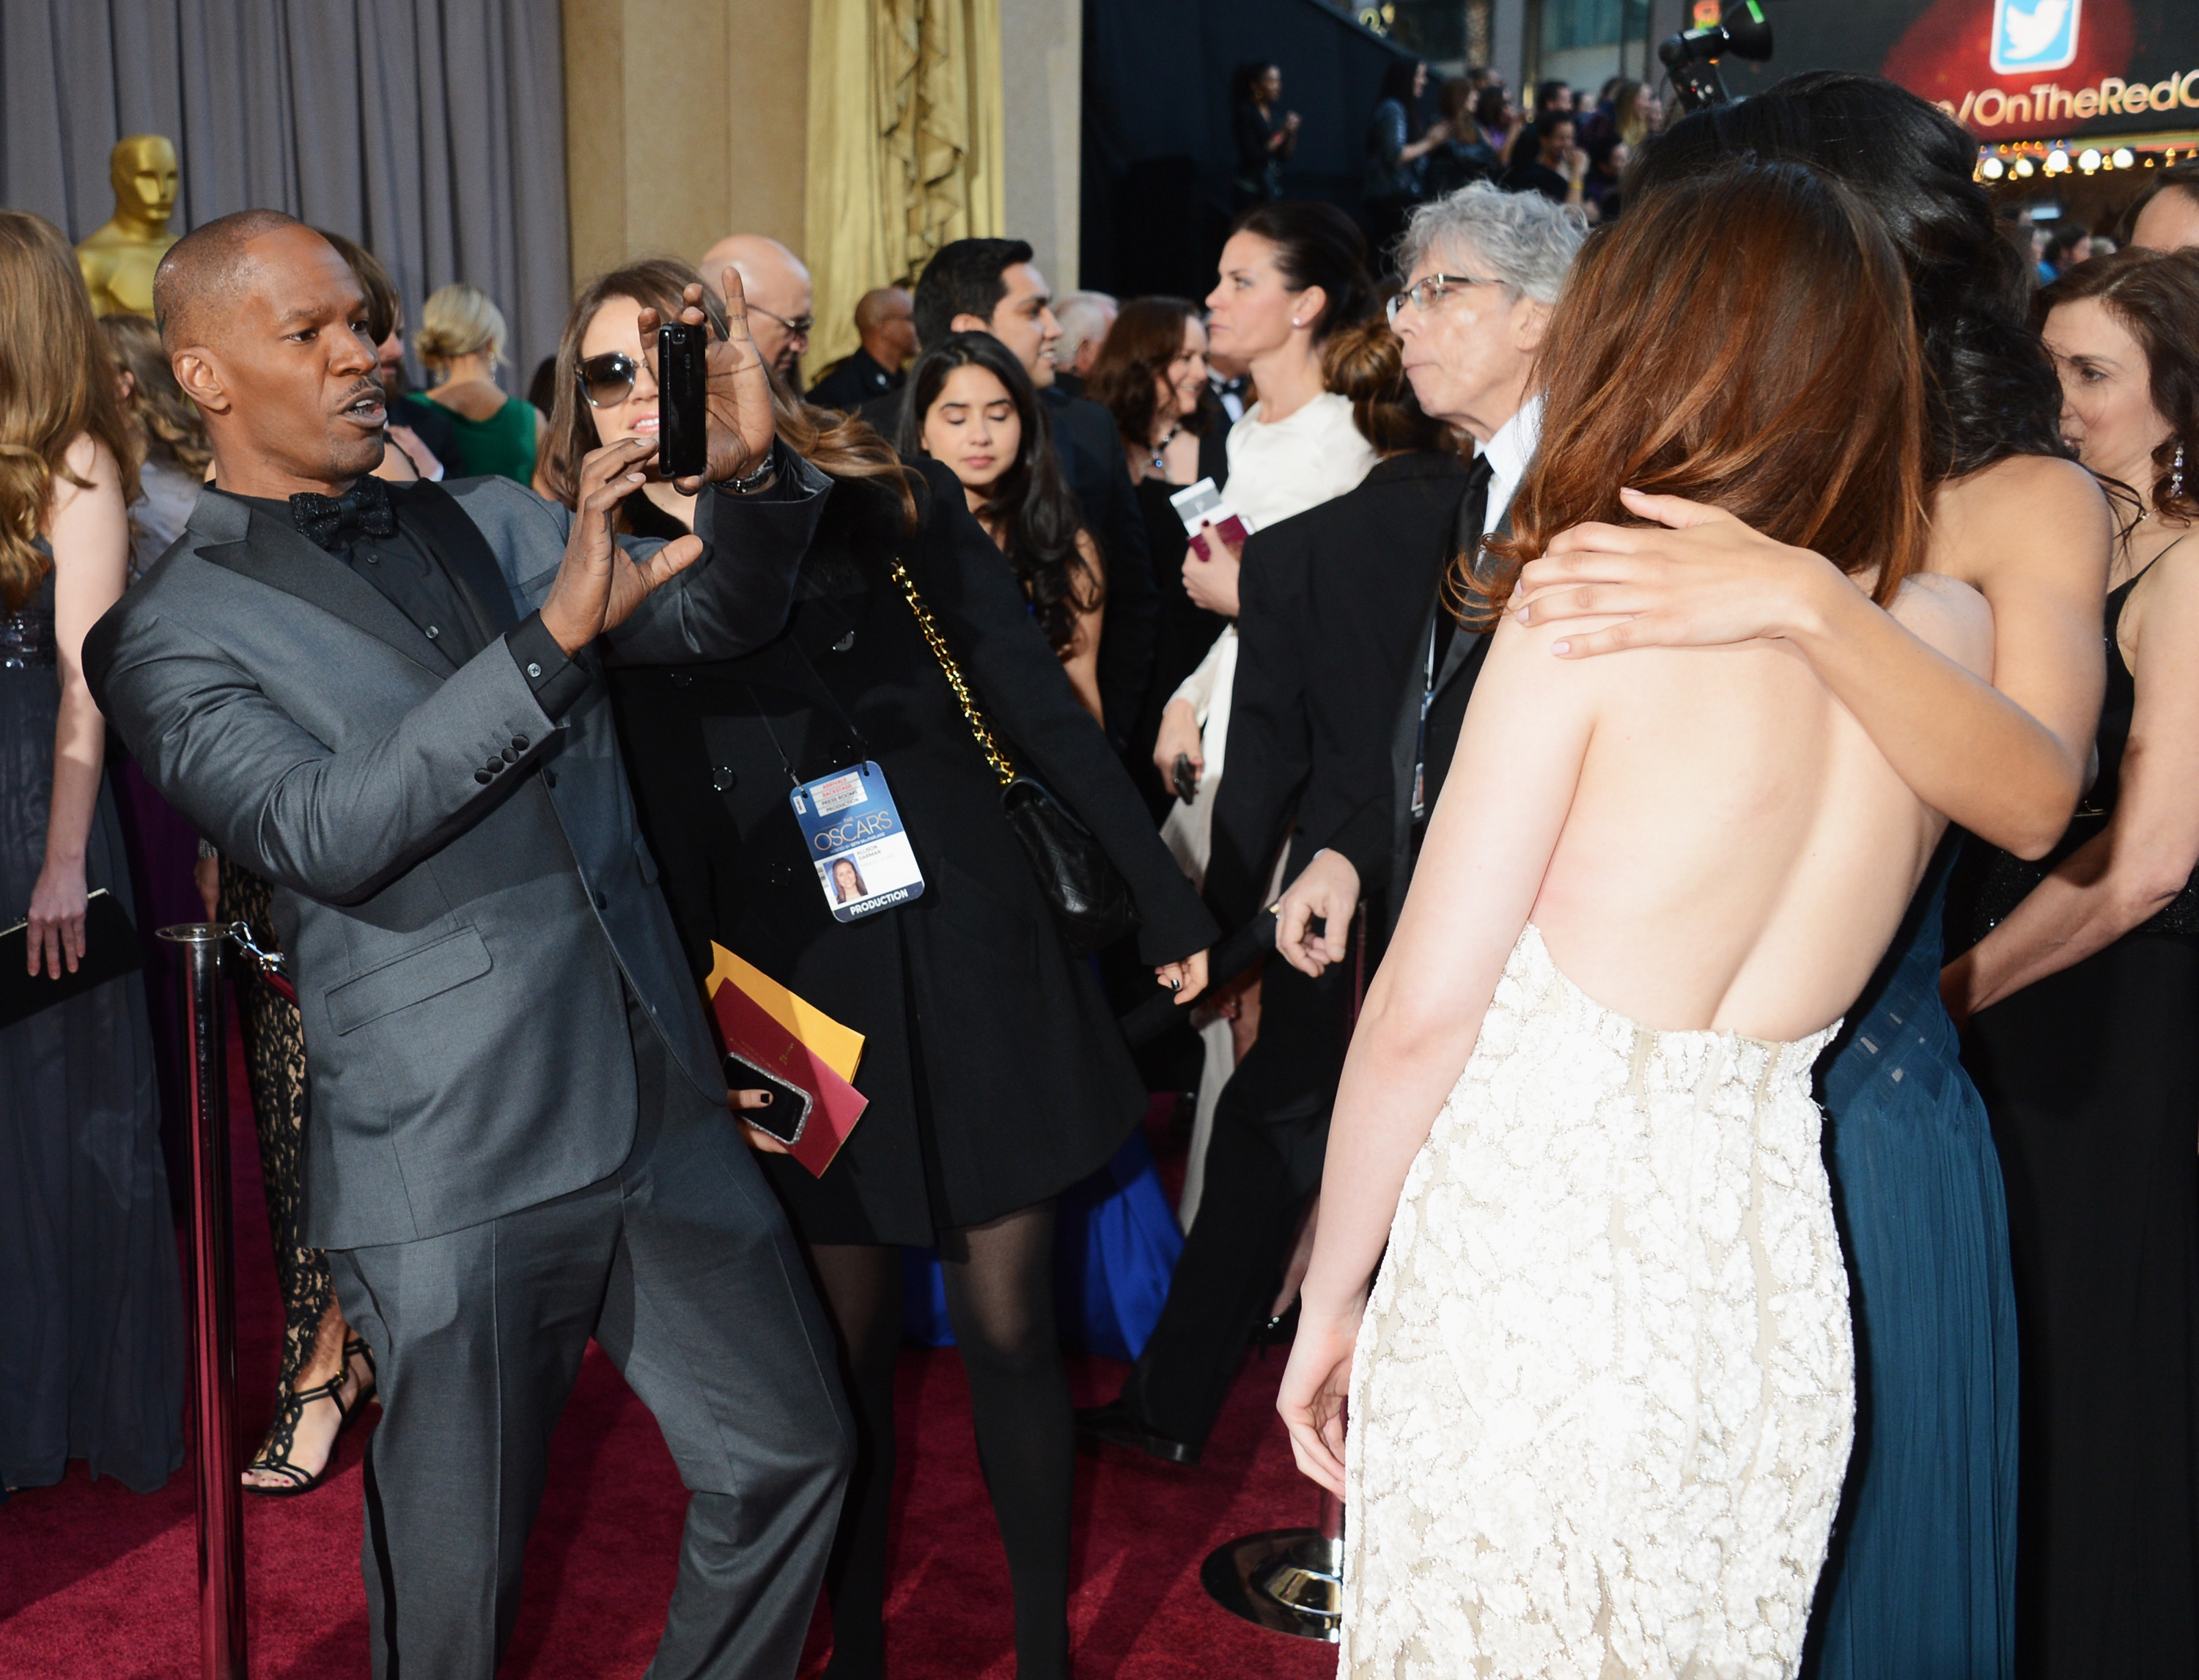 Jamie Foxx snapped a picture of his daughter, Corinne Bishop, with Kristen Stewart.